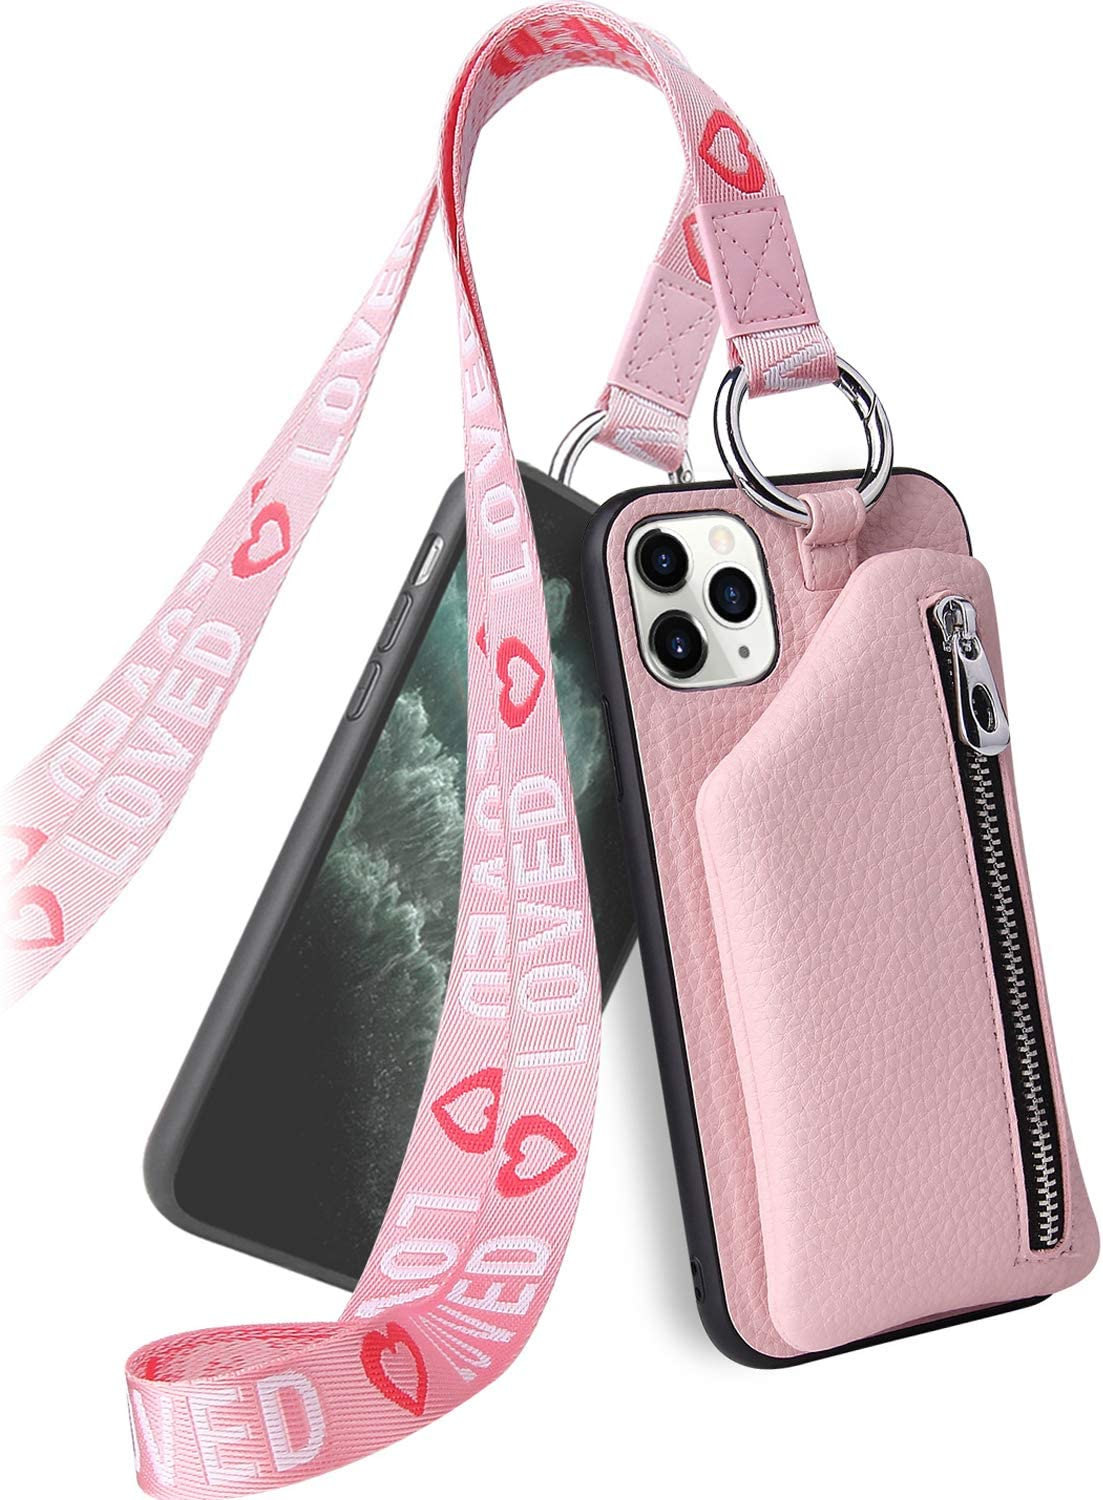 LUVI Detachable Wallet Case for iPhone 11 Pro PU Leather Case with Neck Strap Crossbody Wrist Strap Lanyard Cash Key Pocket Protective Cover with Credit Card Holder Case for iPhone 11 Pro Pink